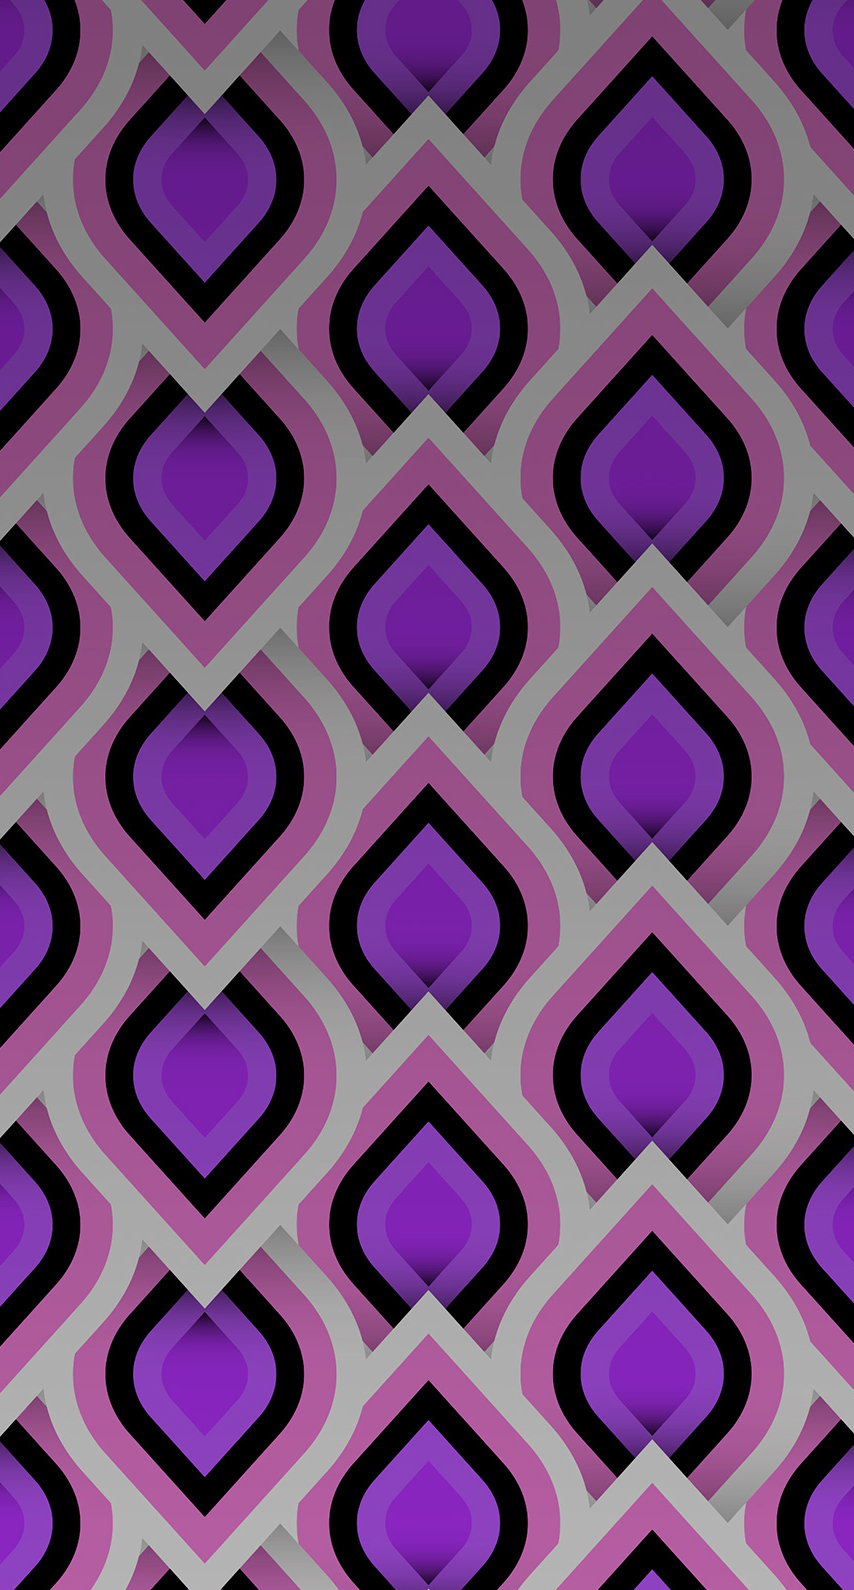 fabric, seamless, textile, repeat, repetition, trendy